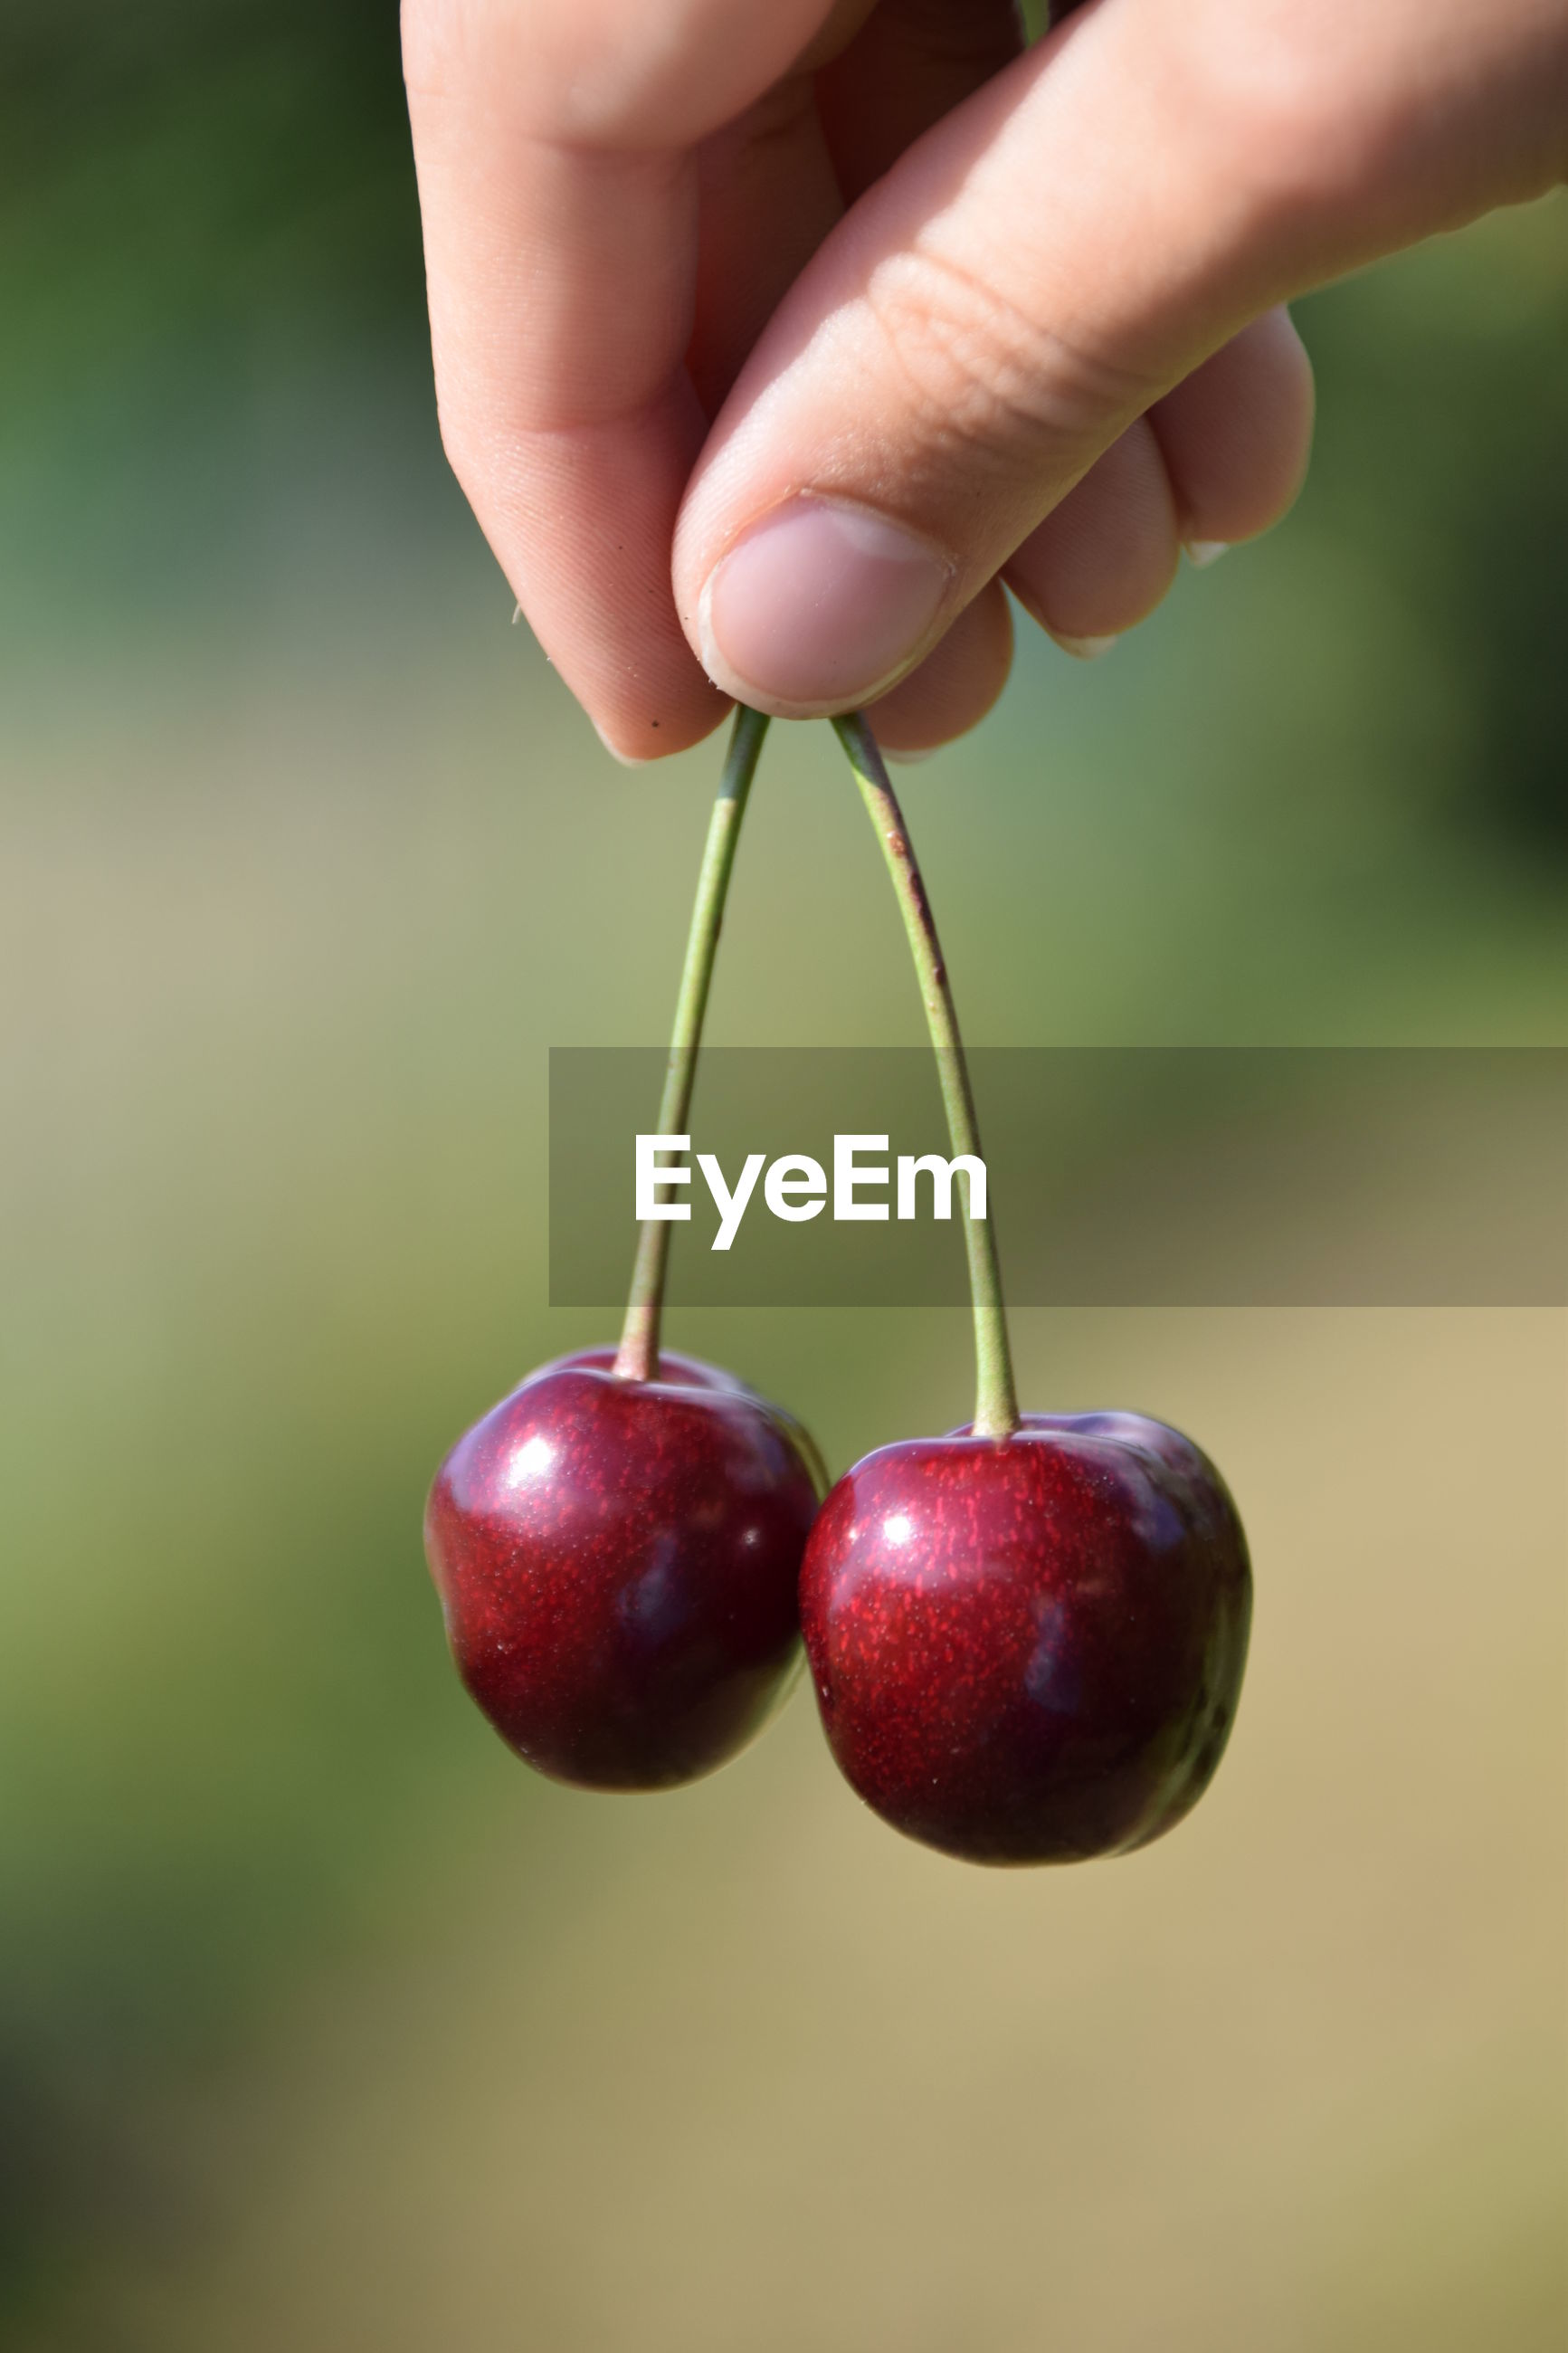 Close-up of cropped hand holding cherries